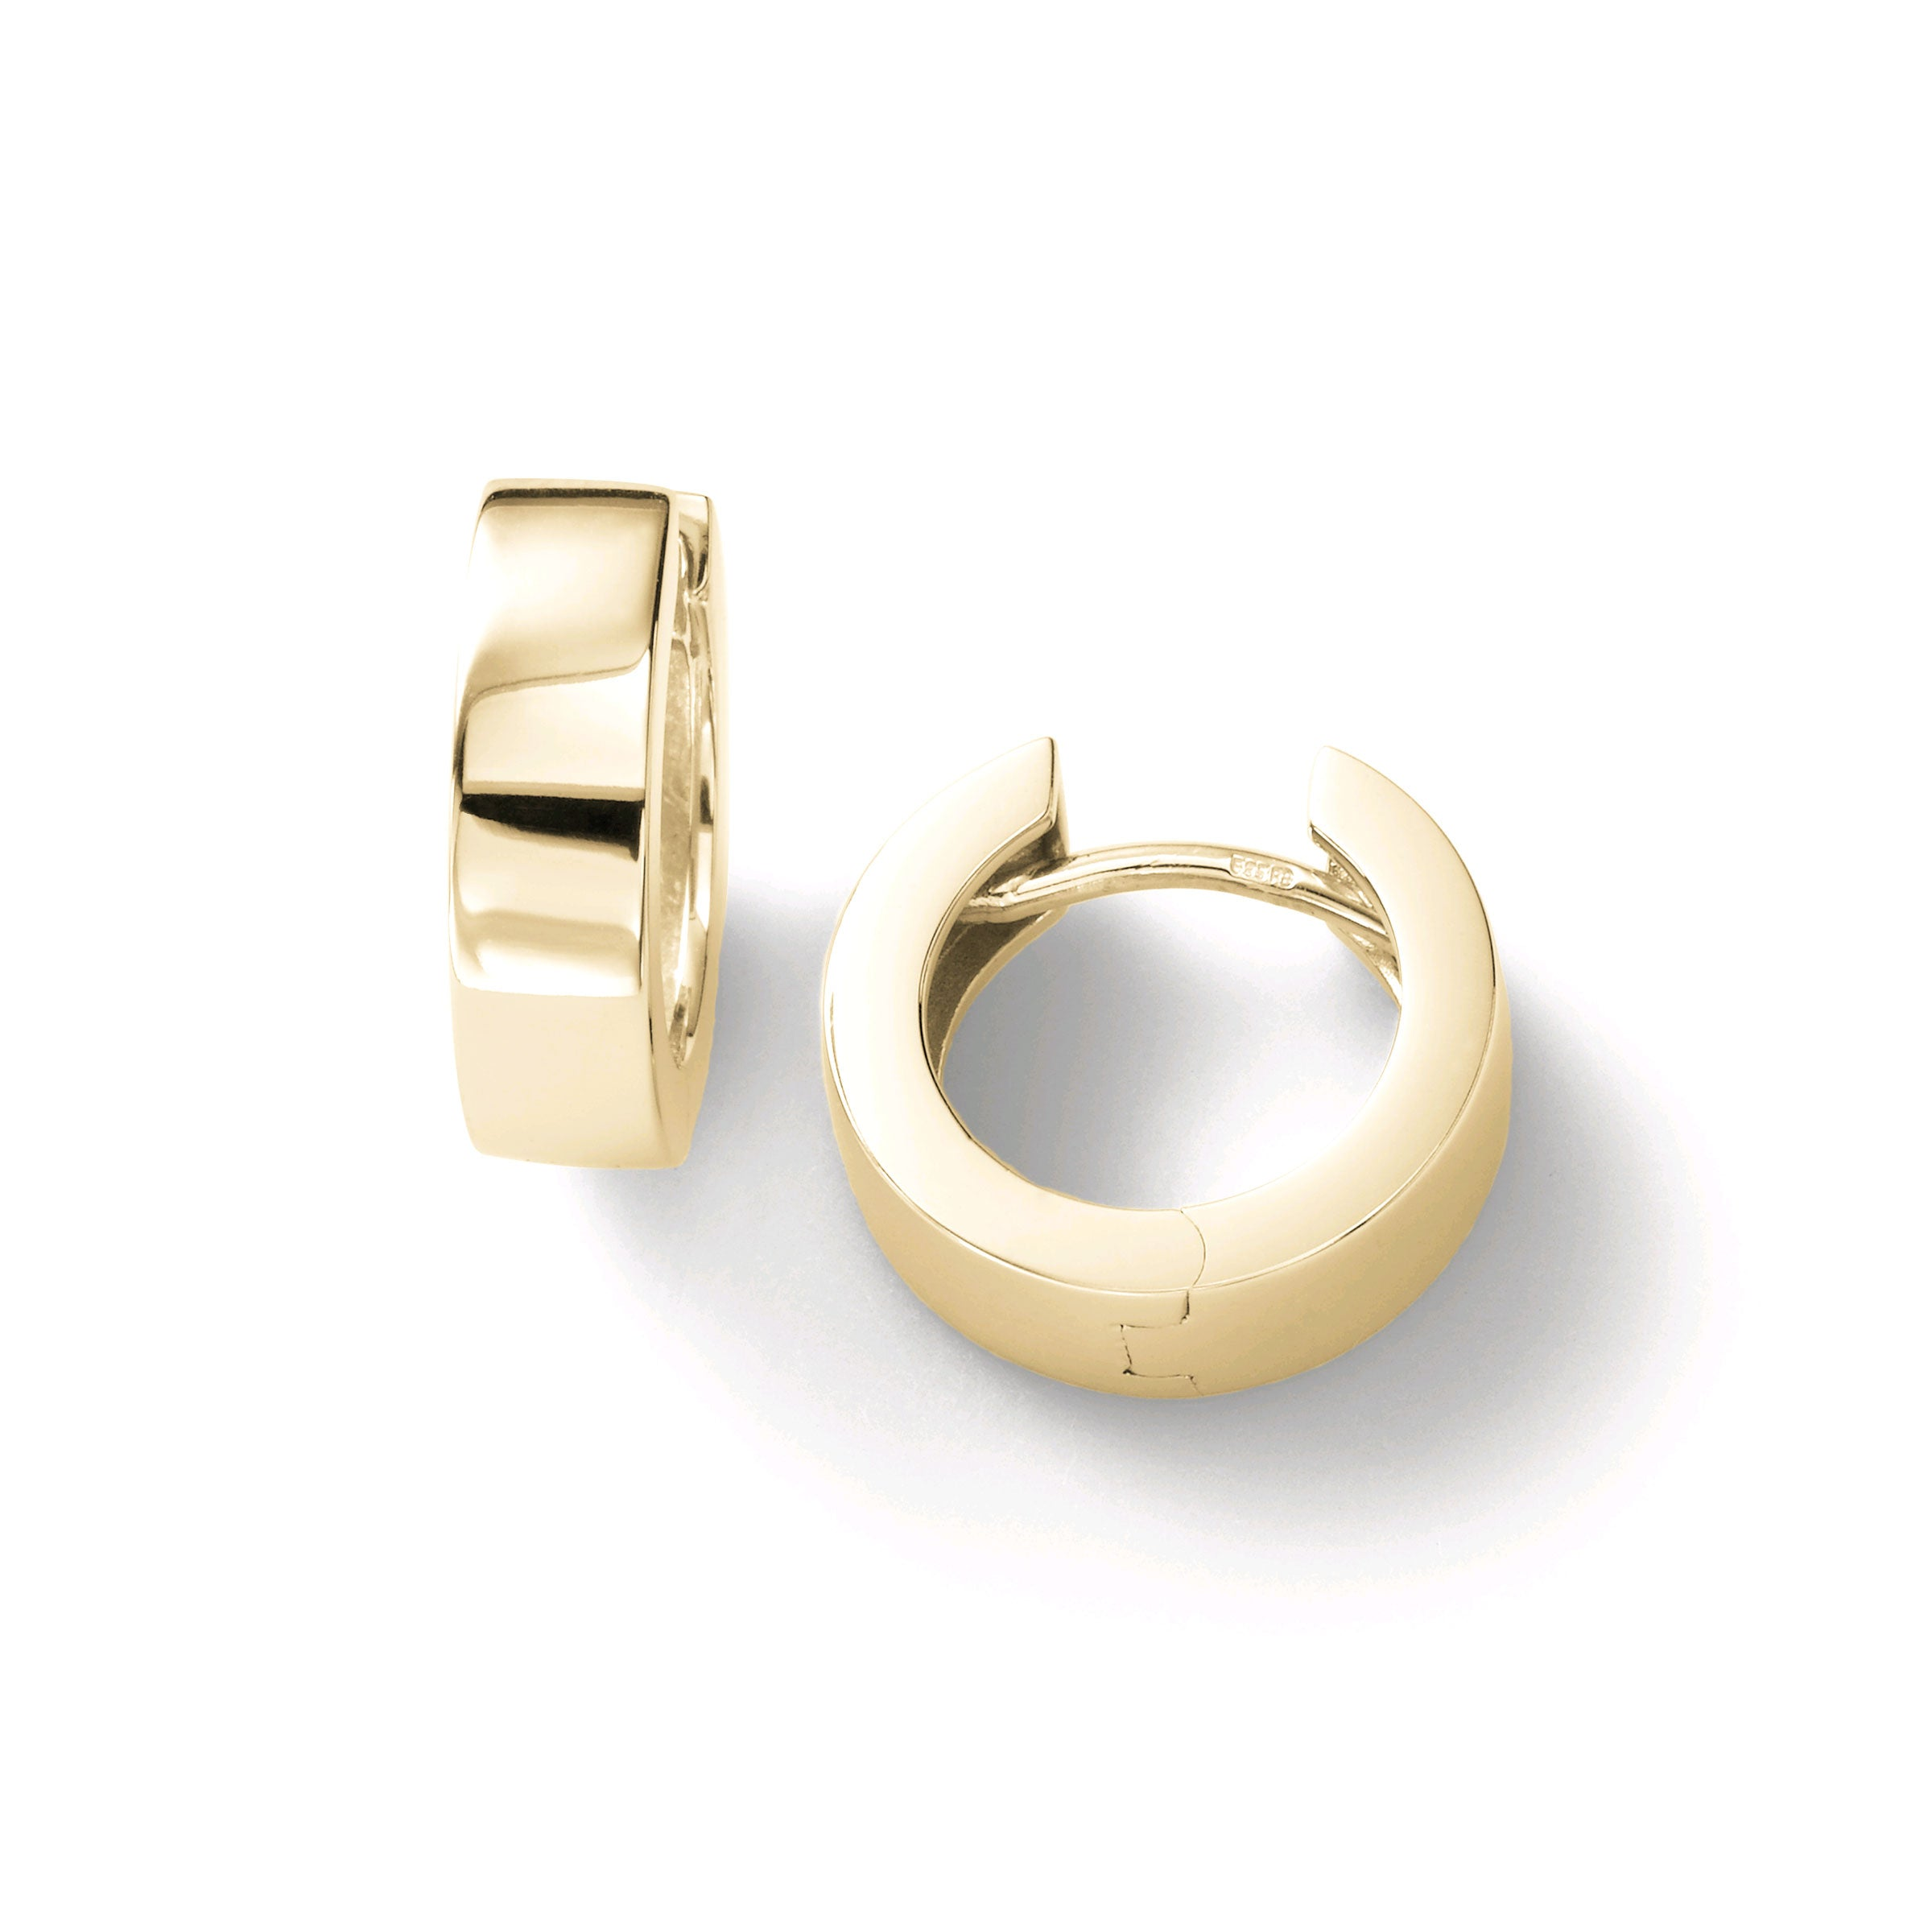 High Polish Huggie Hoop Earrings, 14K Yellow Gold